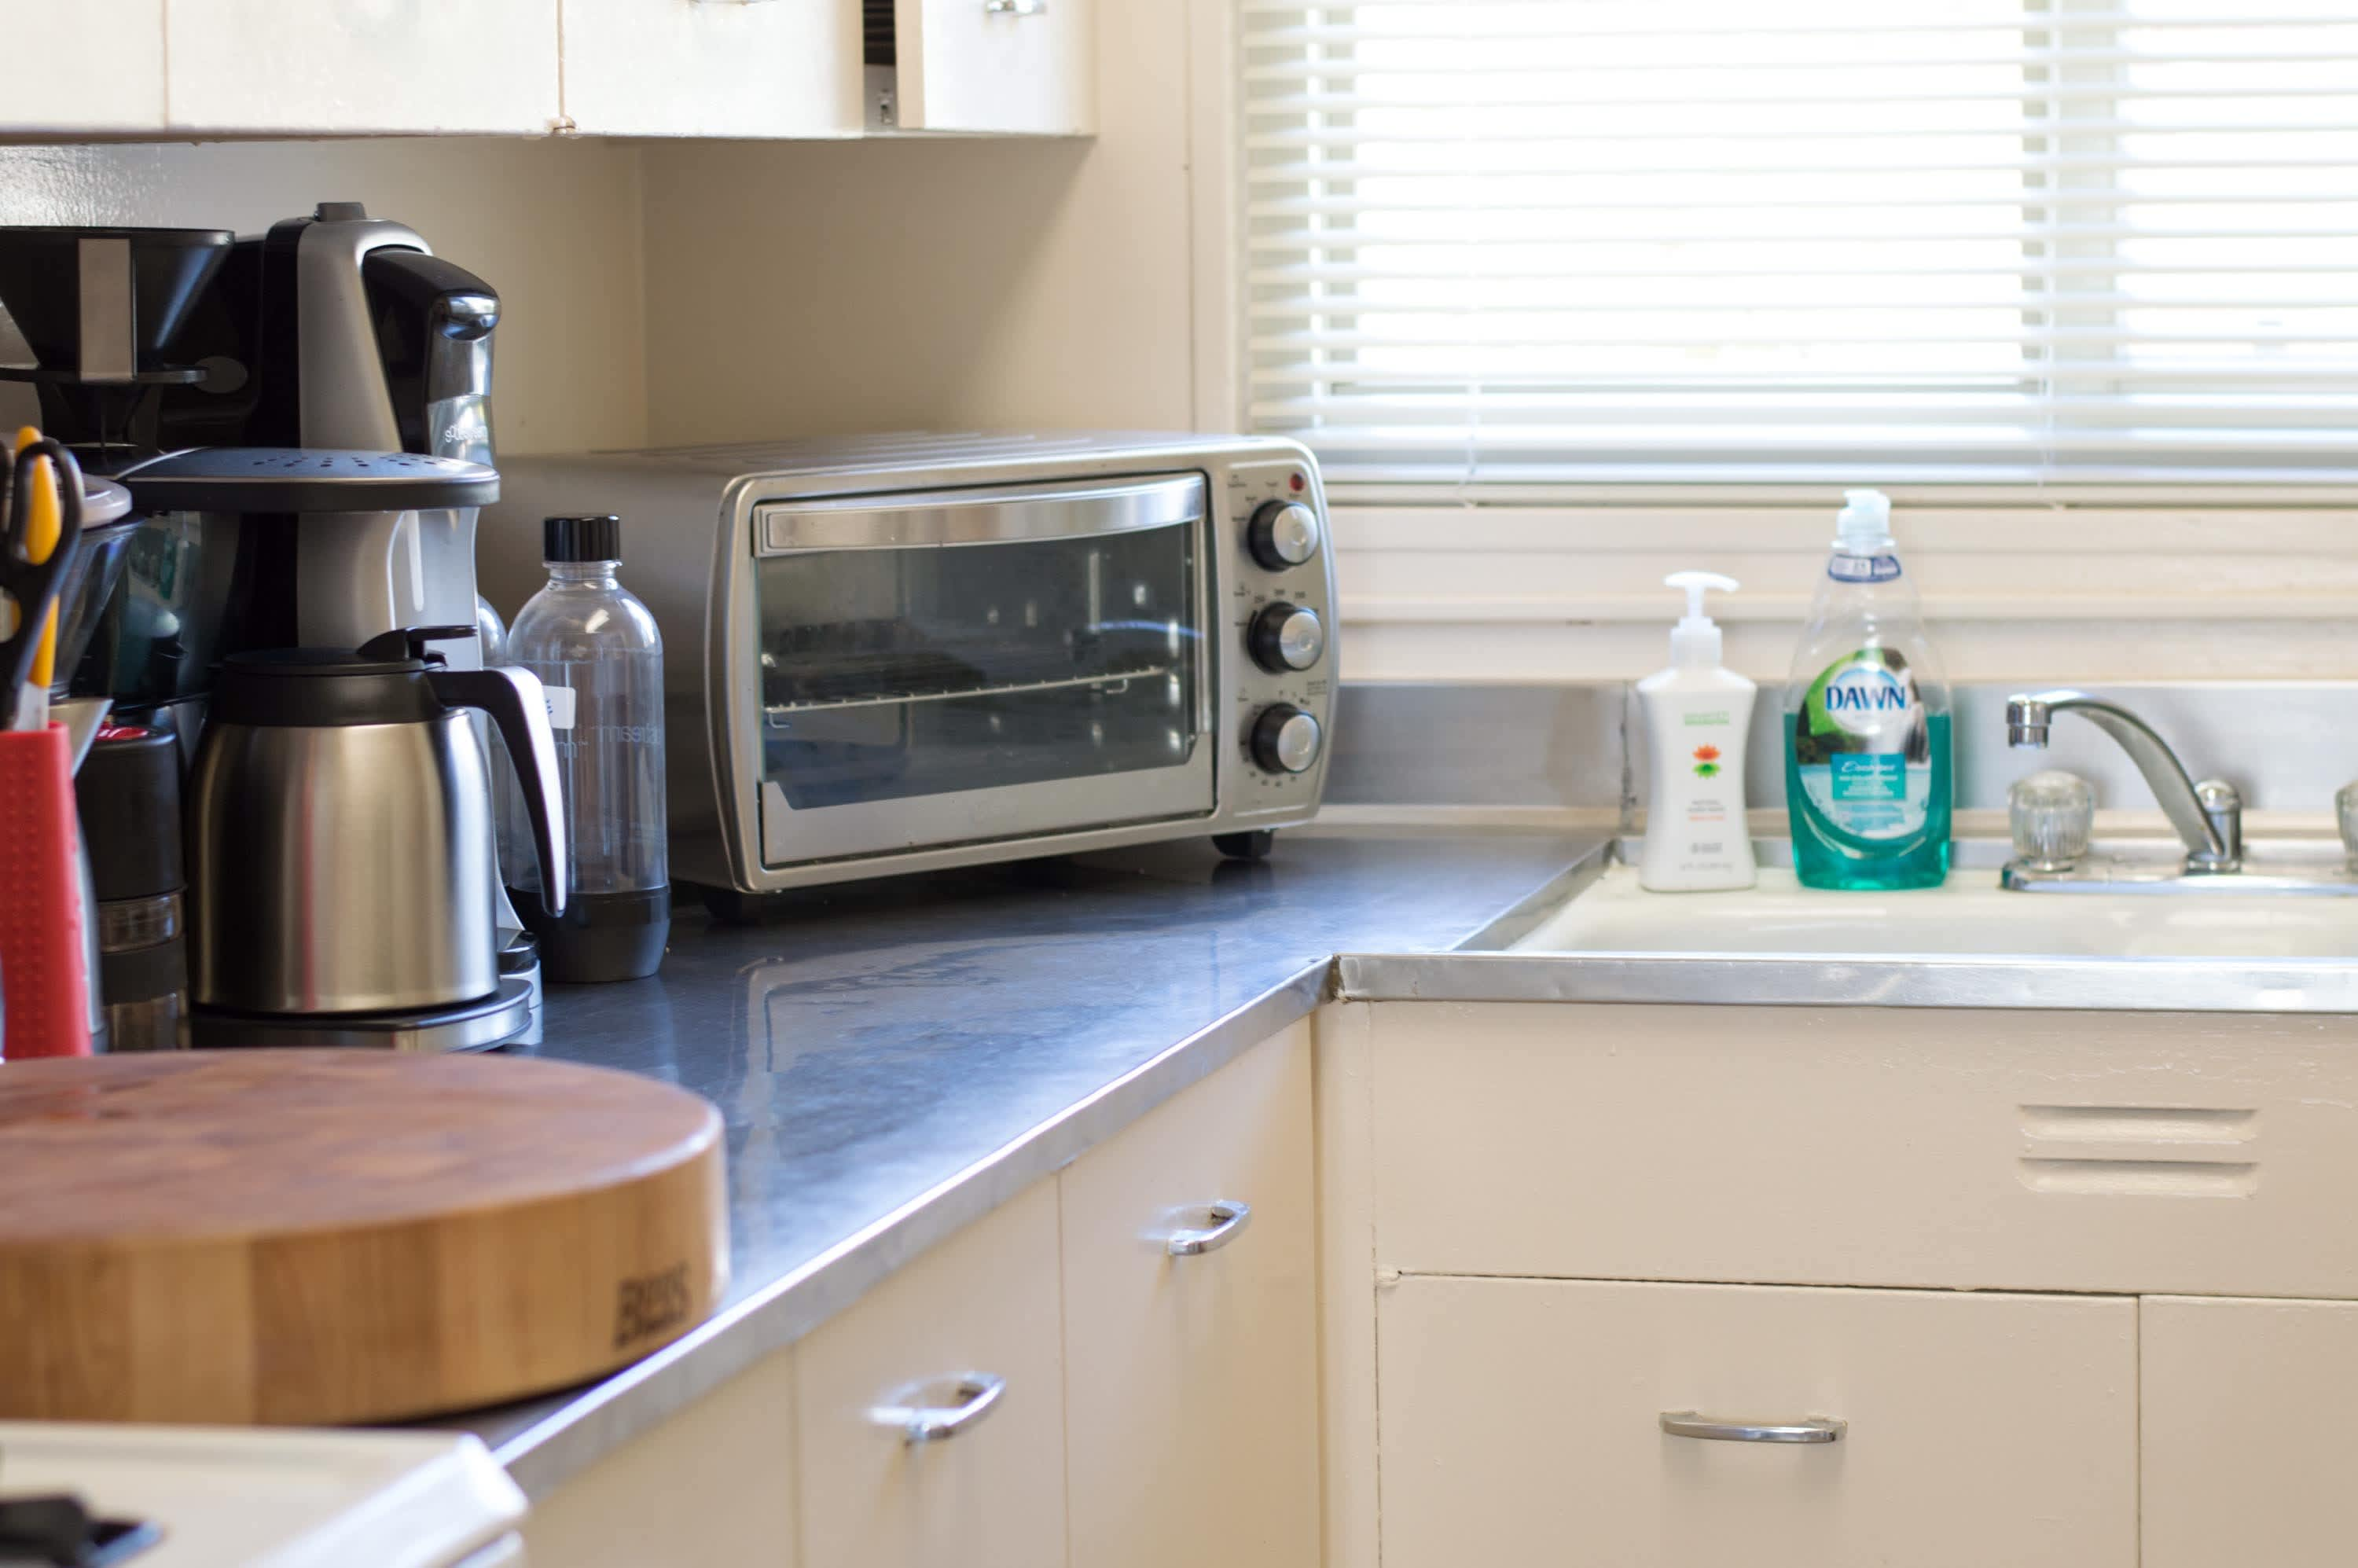 How To Clean Stainless Steel Countertops To a Shiny, Streak-Free Finish: gallery image 7